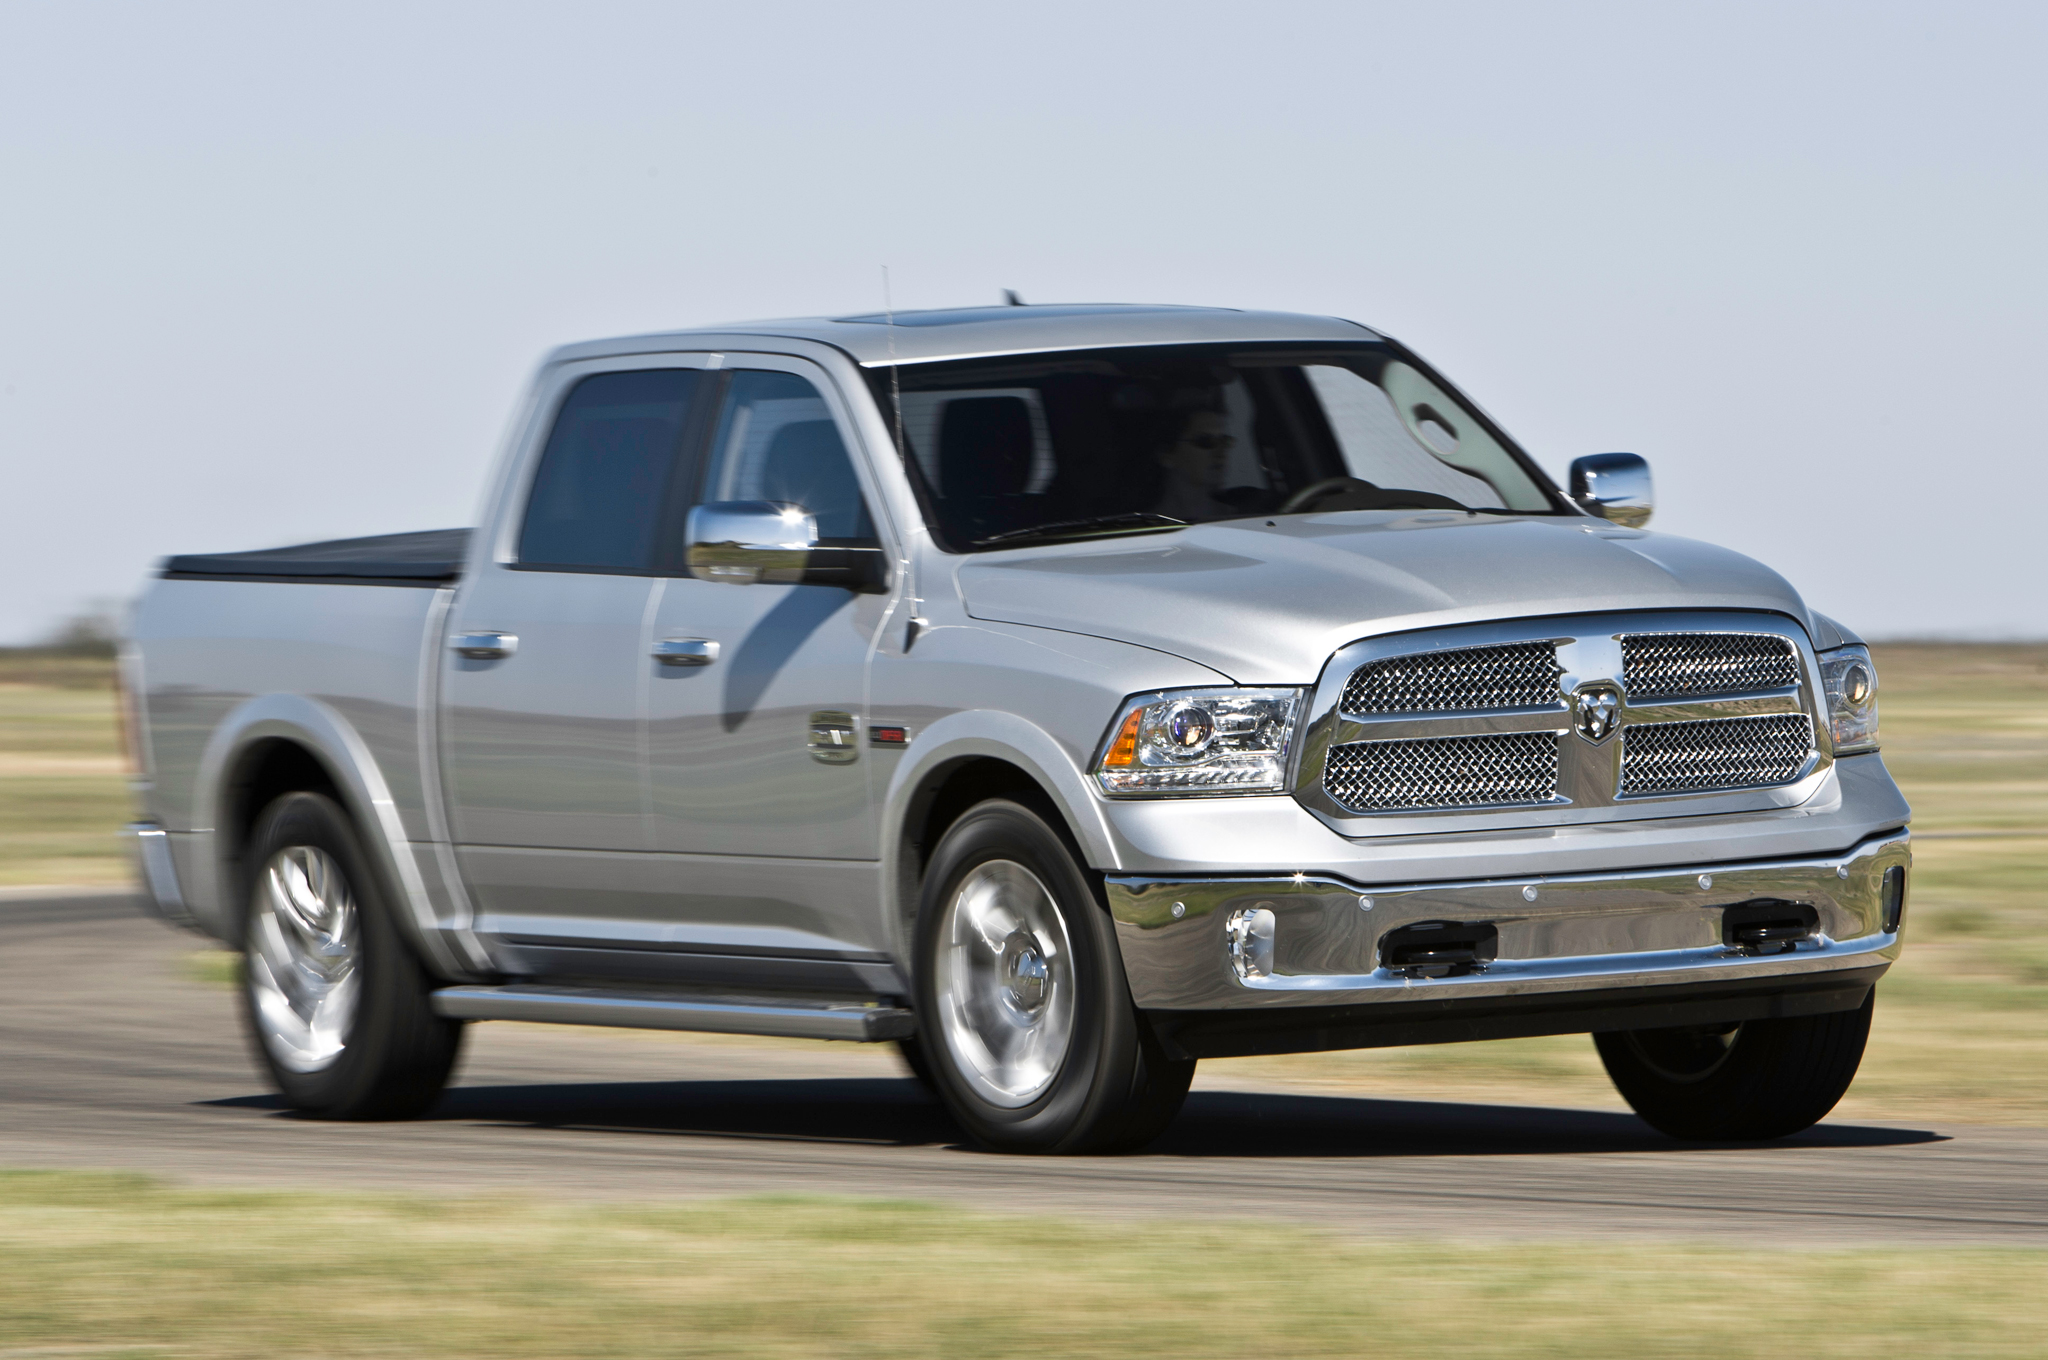 Ram 1500 Production Increases at Warren Truck Plant to Meet Demand